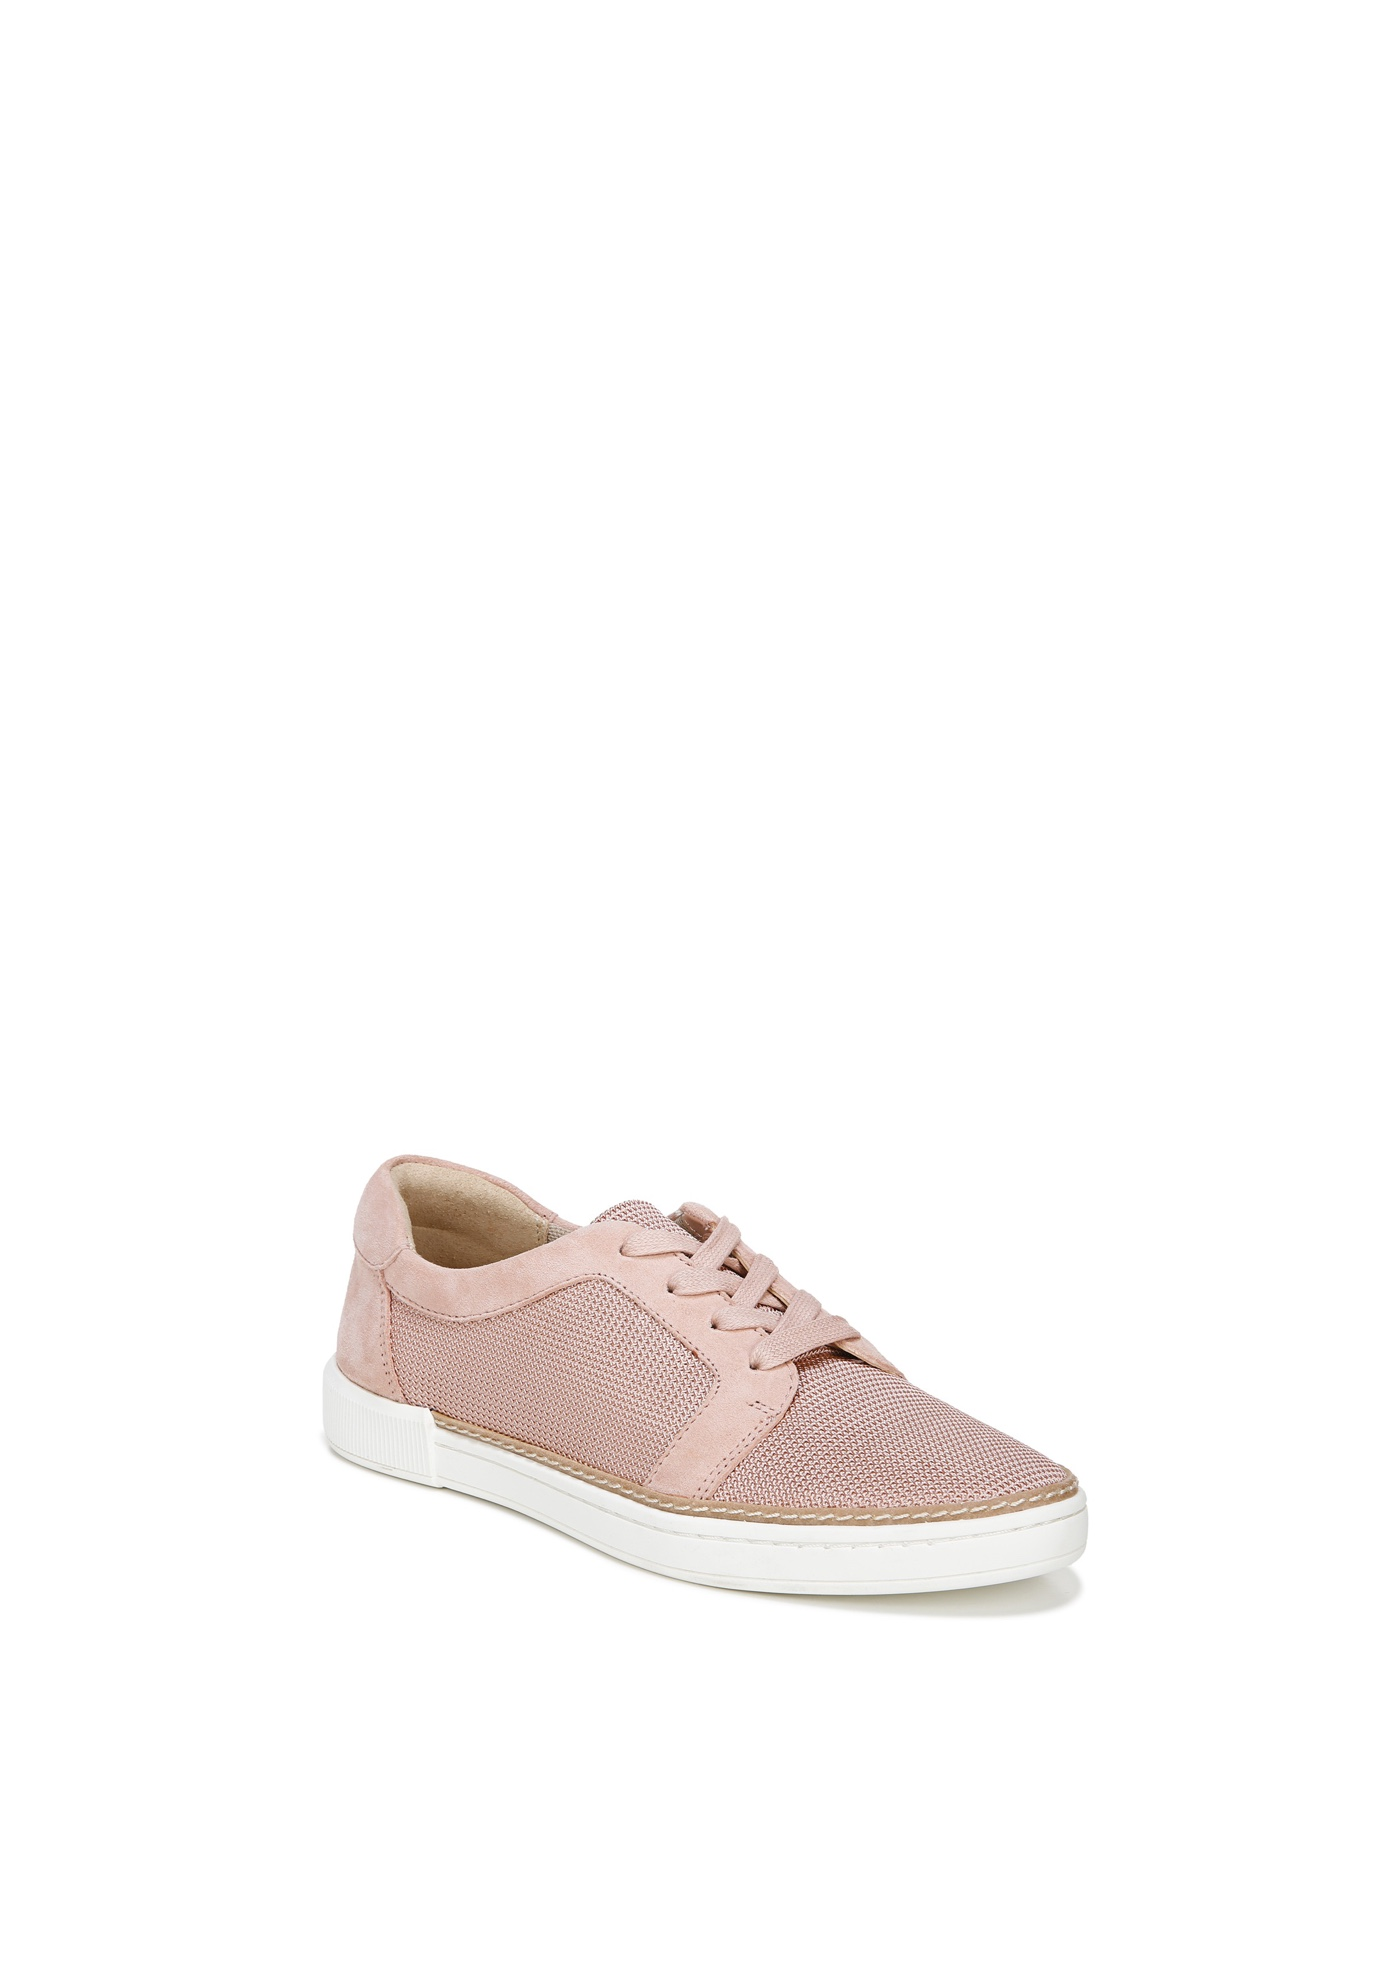 Jane2 Sneaker by Naturalizer,